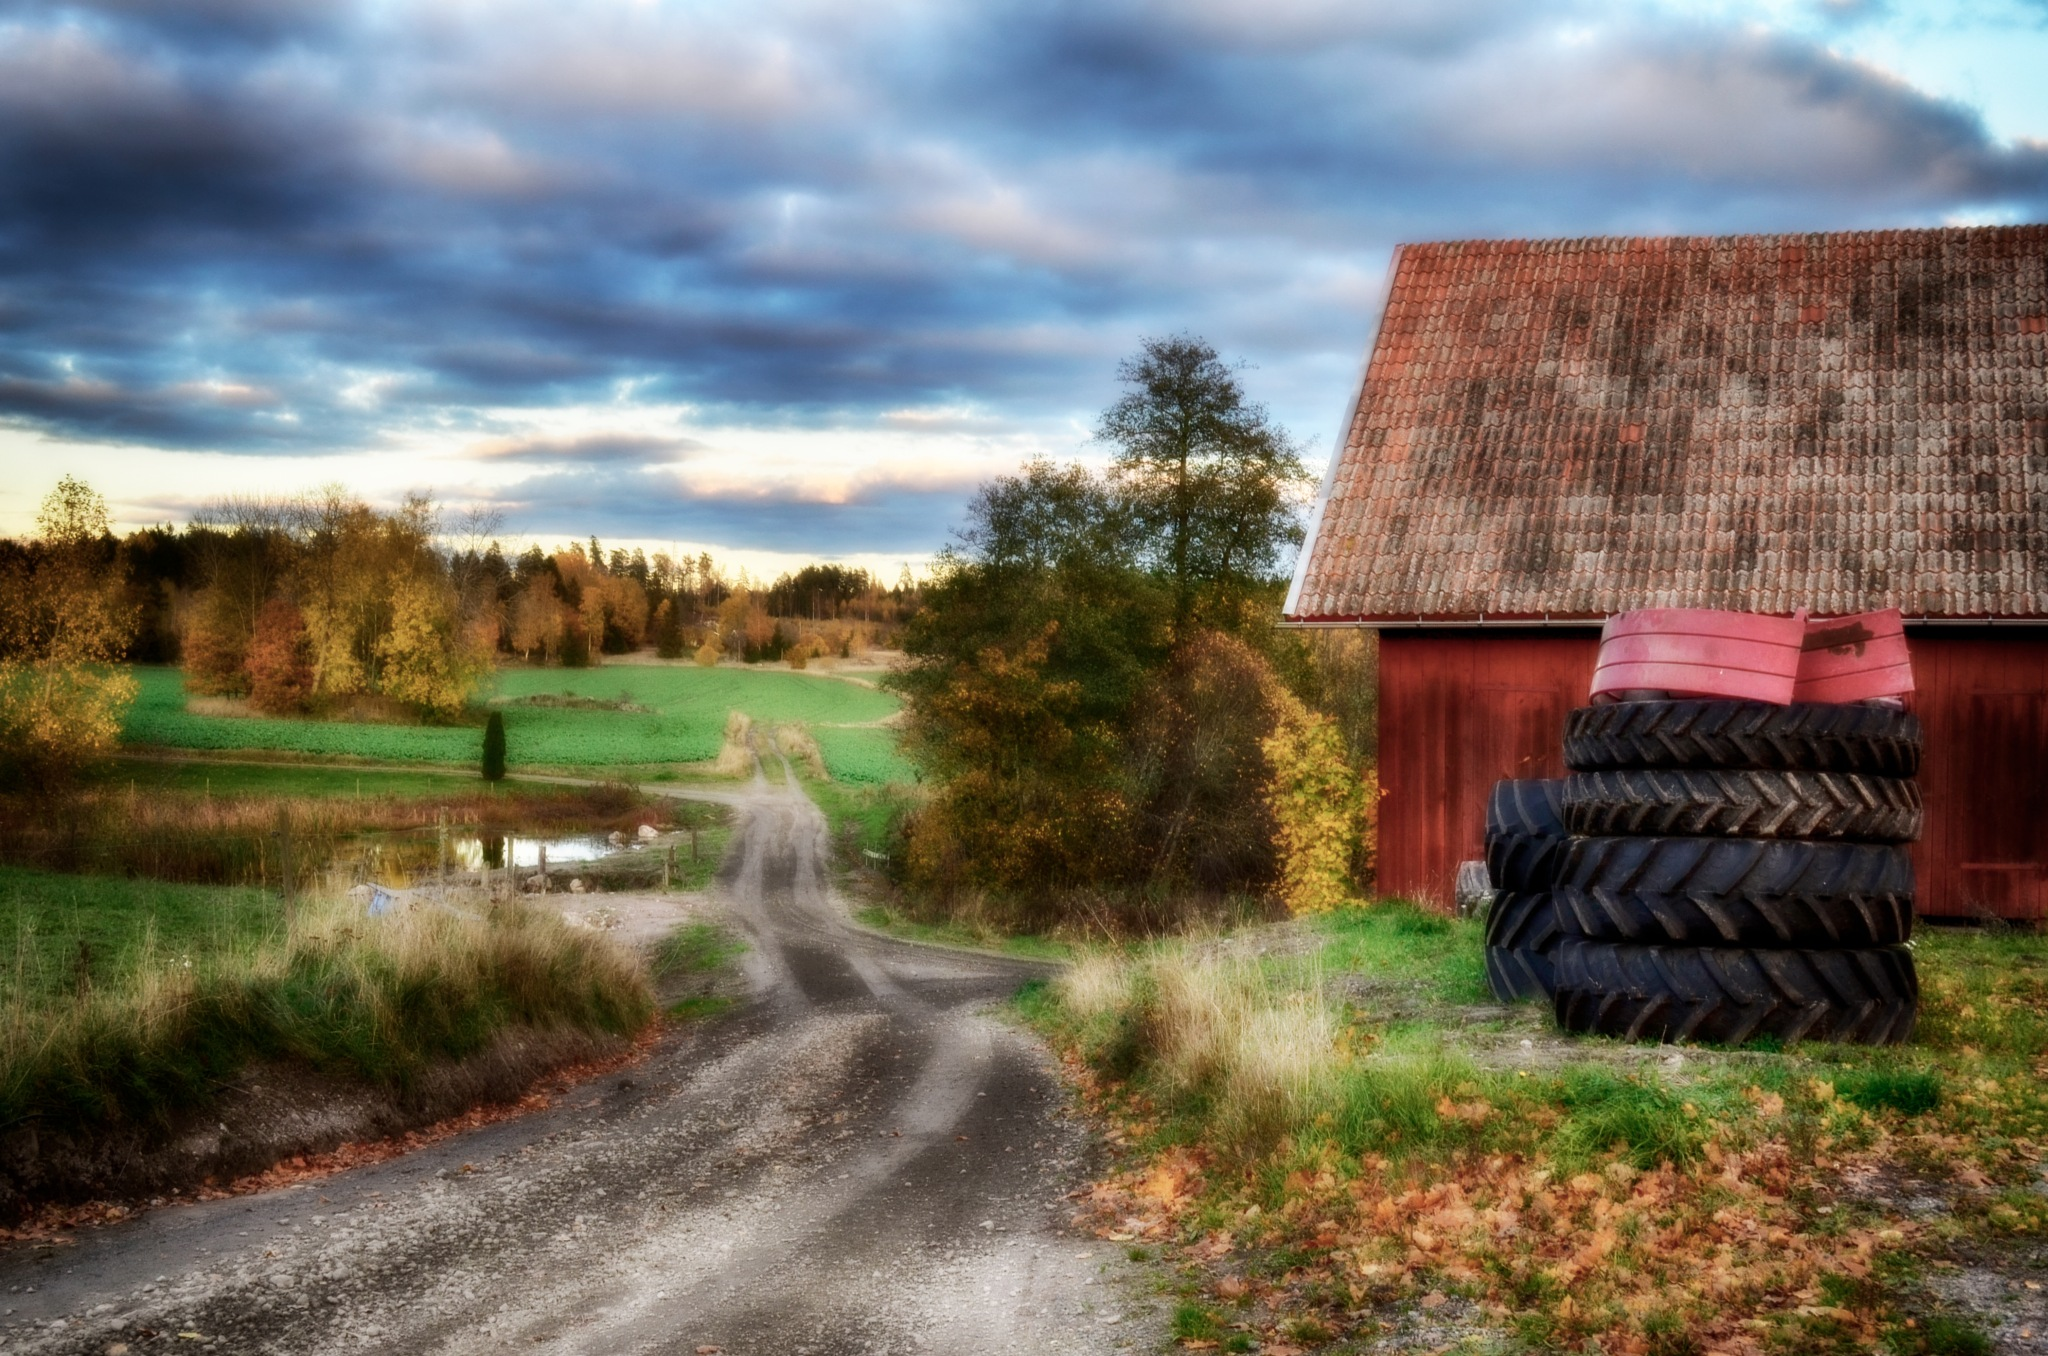 Outside the countryside 2 by rollepersson